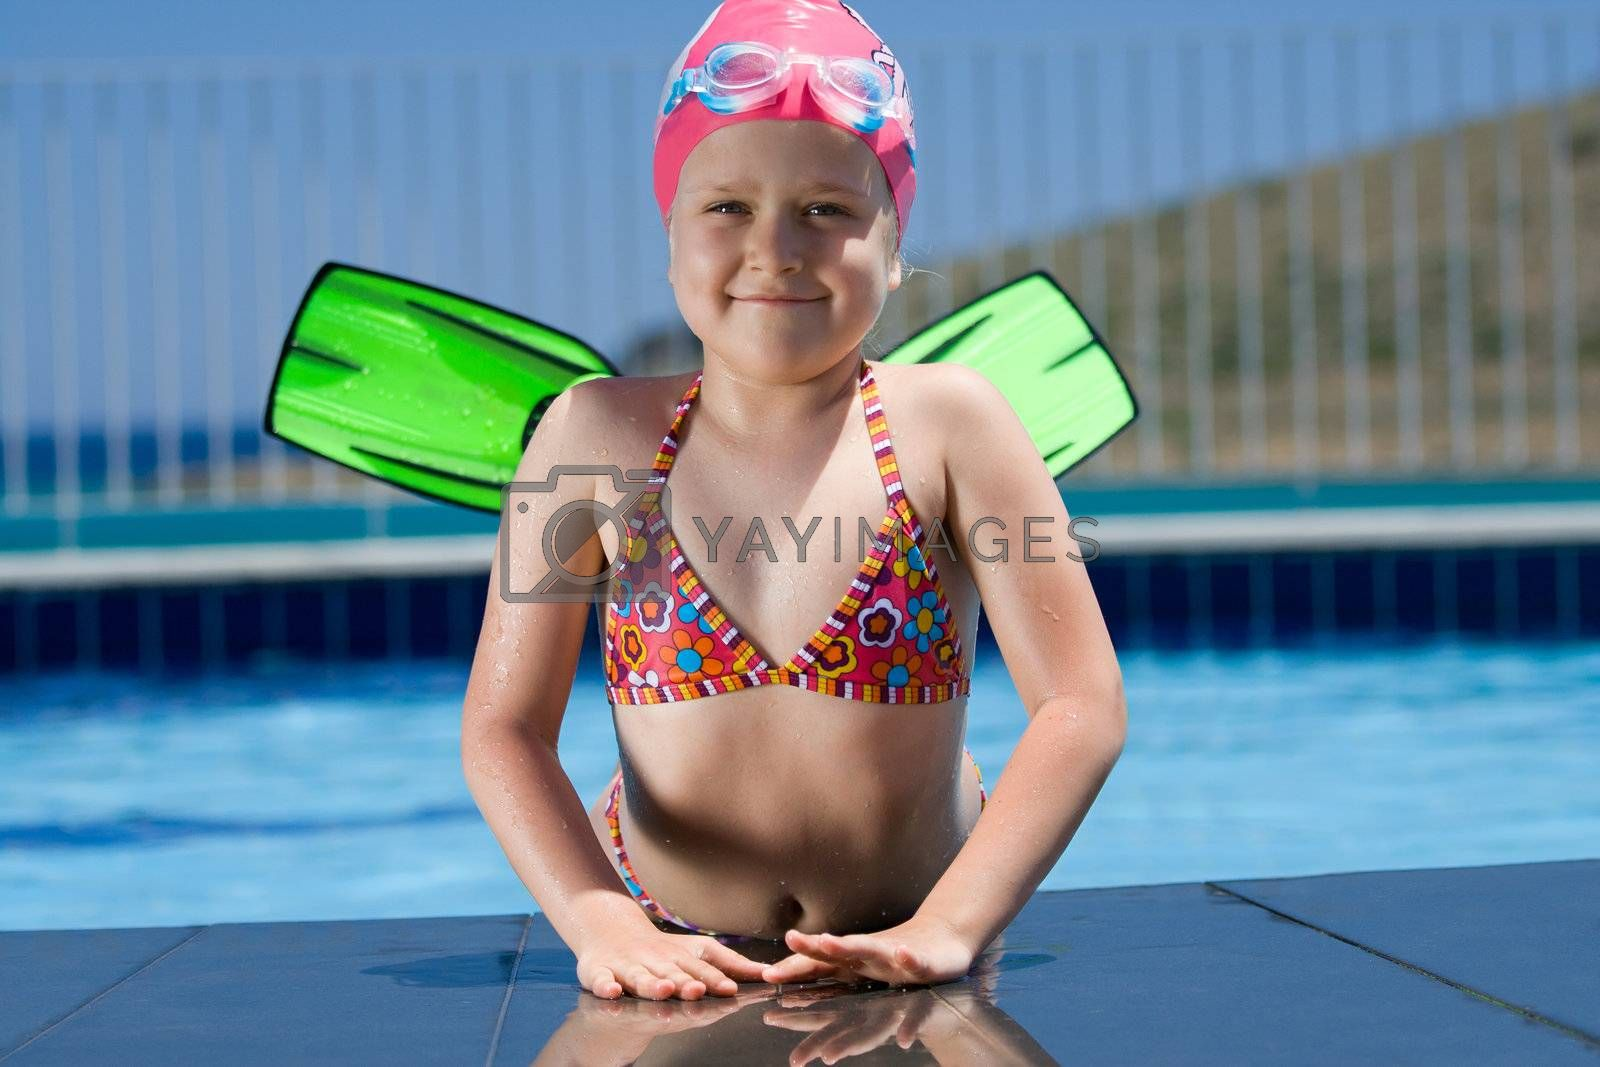 Close-up portrait of smiling cute little child in bathing cap, glasses and fins is lying on the swimming pool ledge